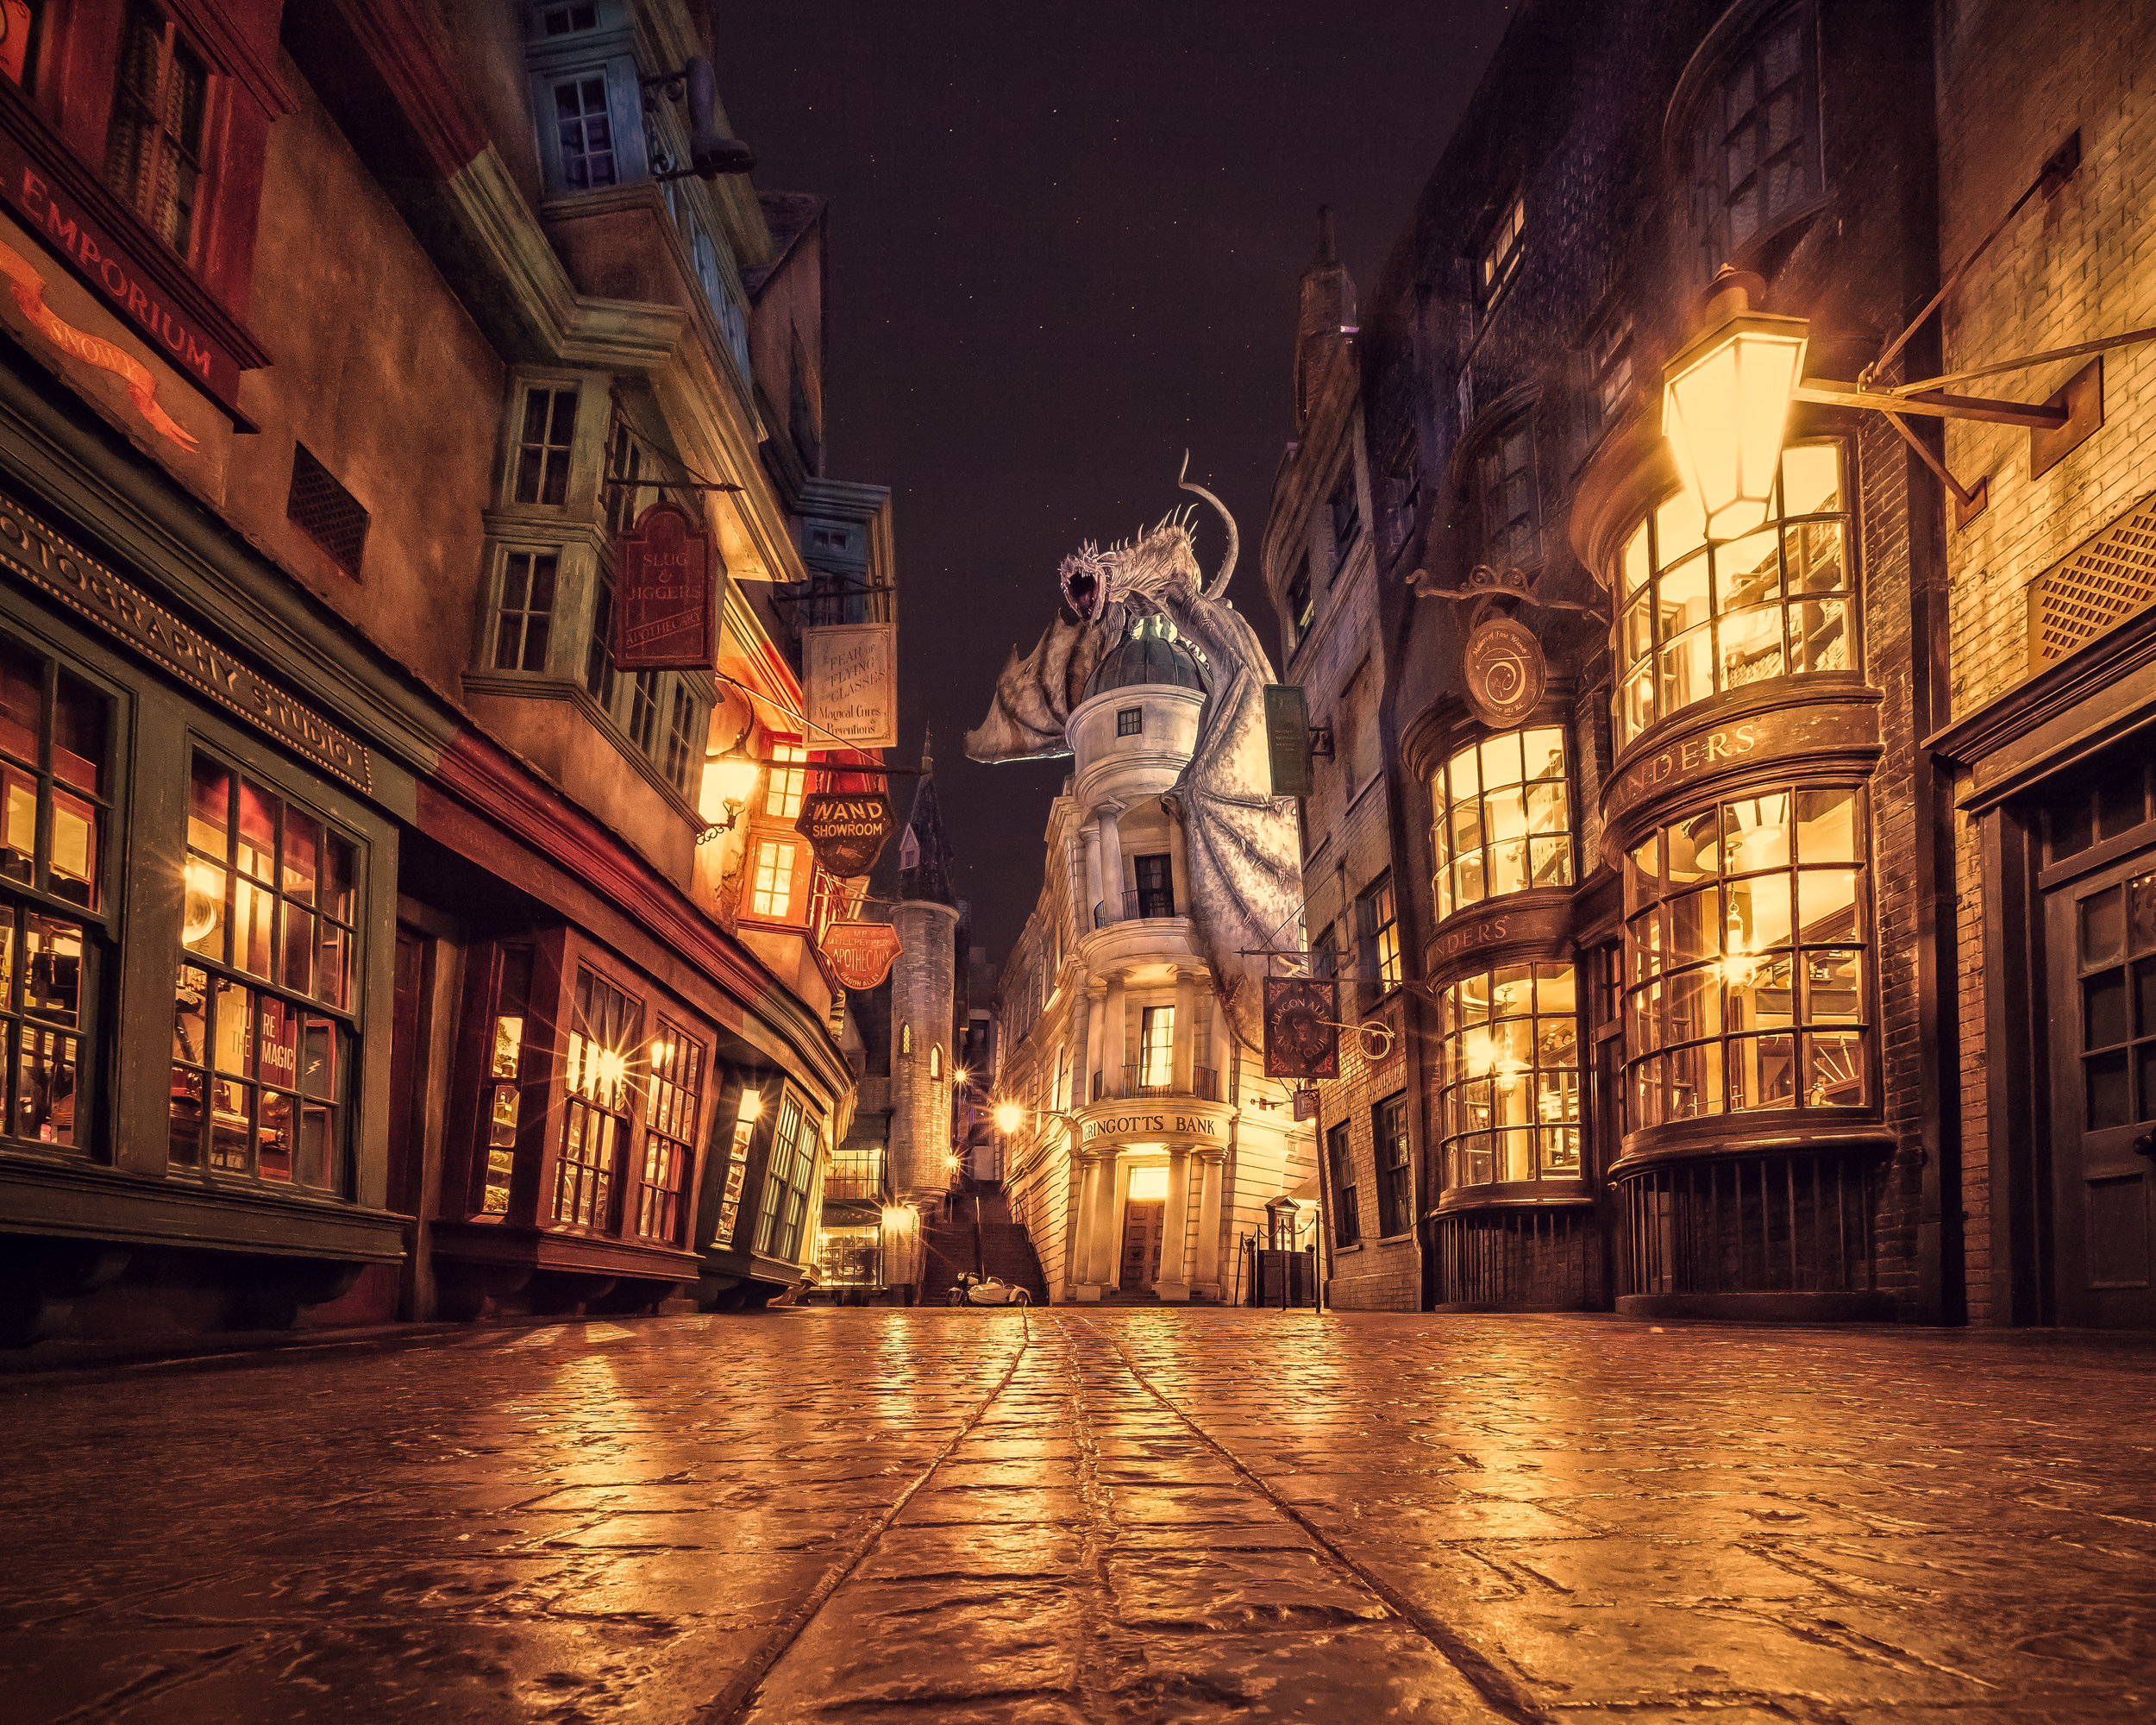 Pic by  @GilmarSmith   Universal Studios' Wizarding World of Harry Potter -- Diagon Alley